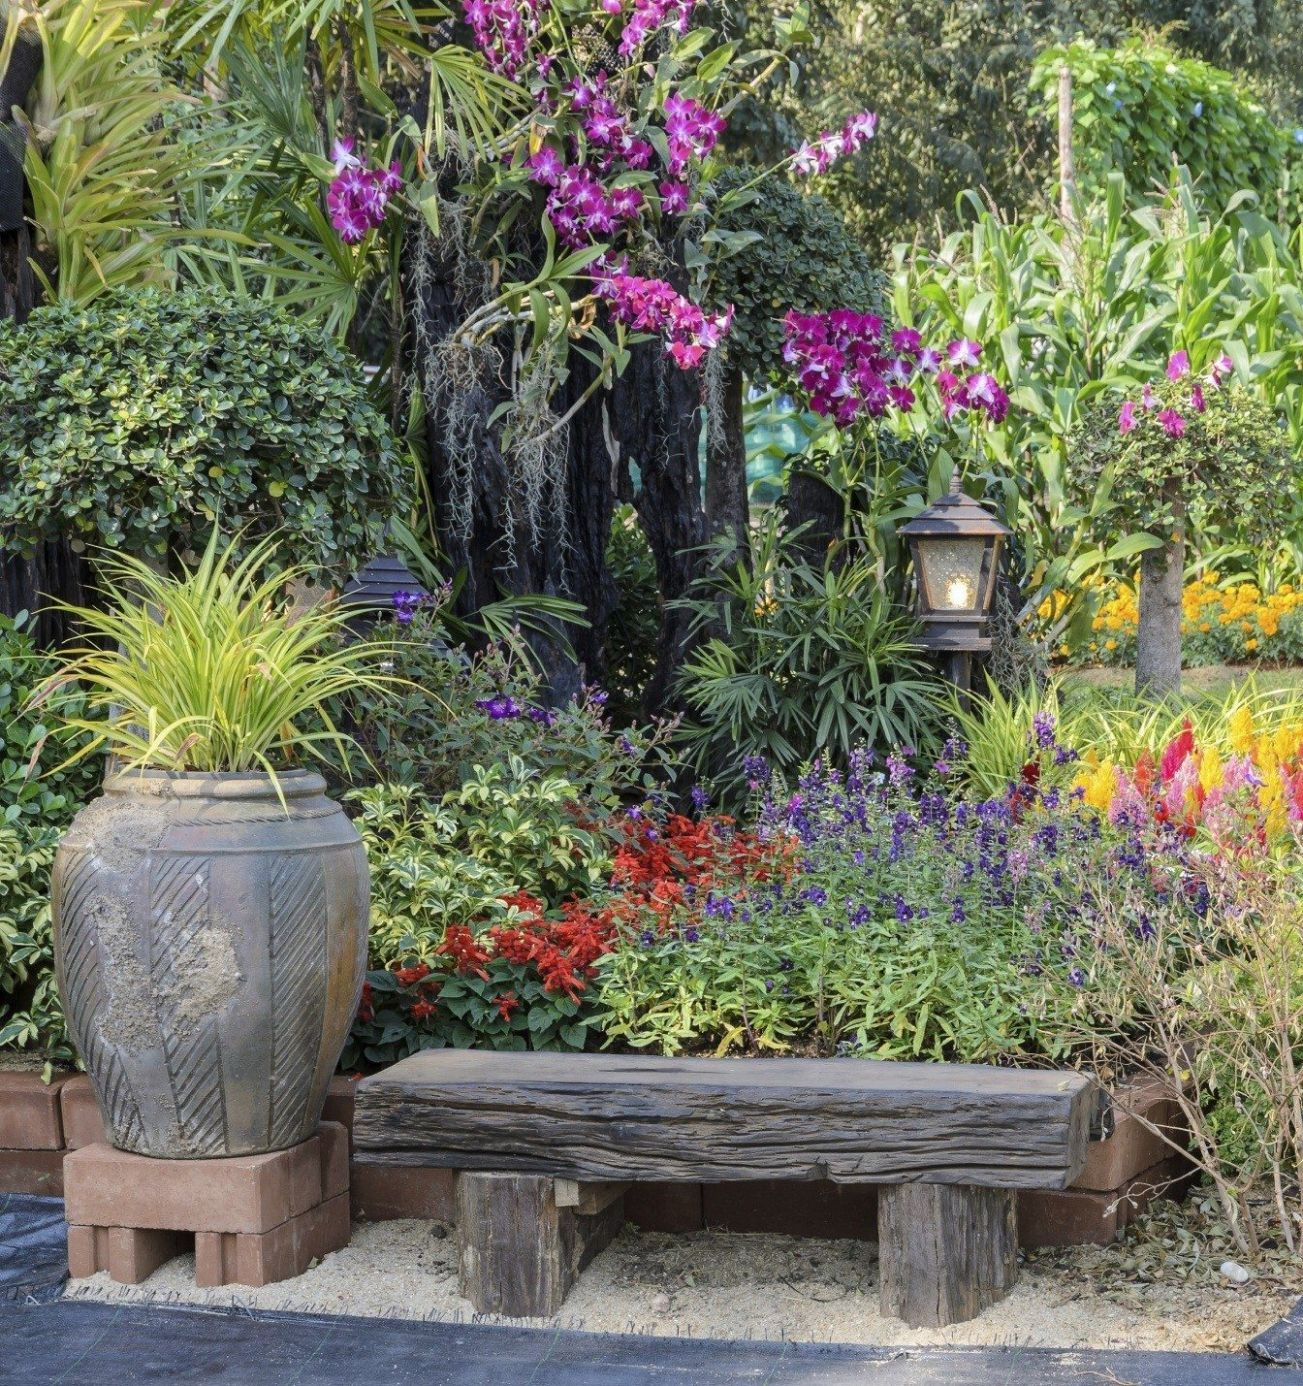 Choosing Colorful Garden Plants - Tips For Adding Color In The Garden - garden ideas plants